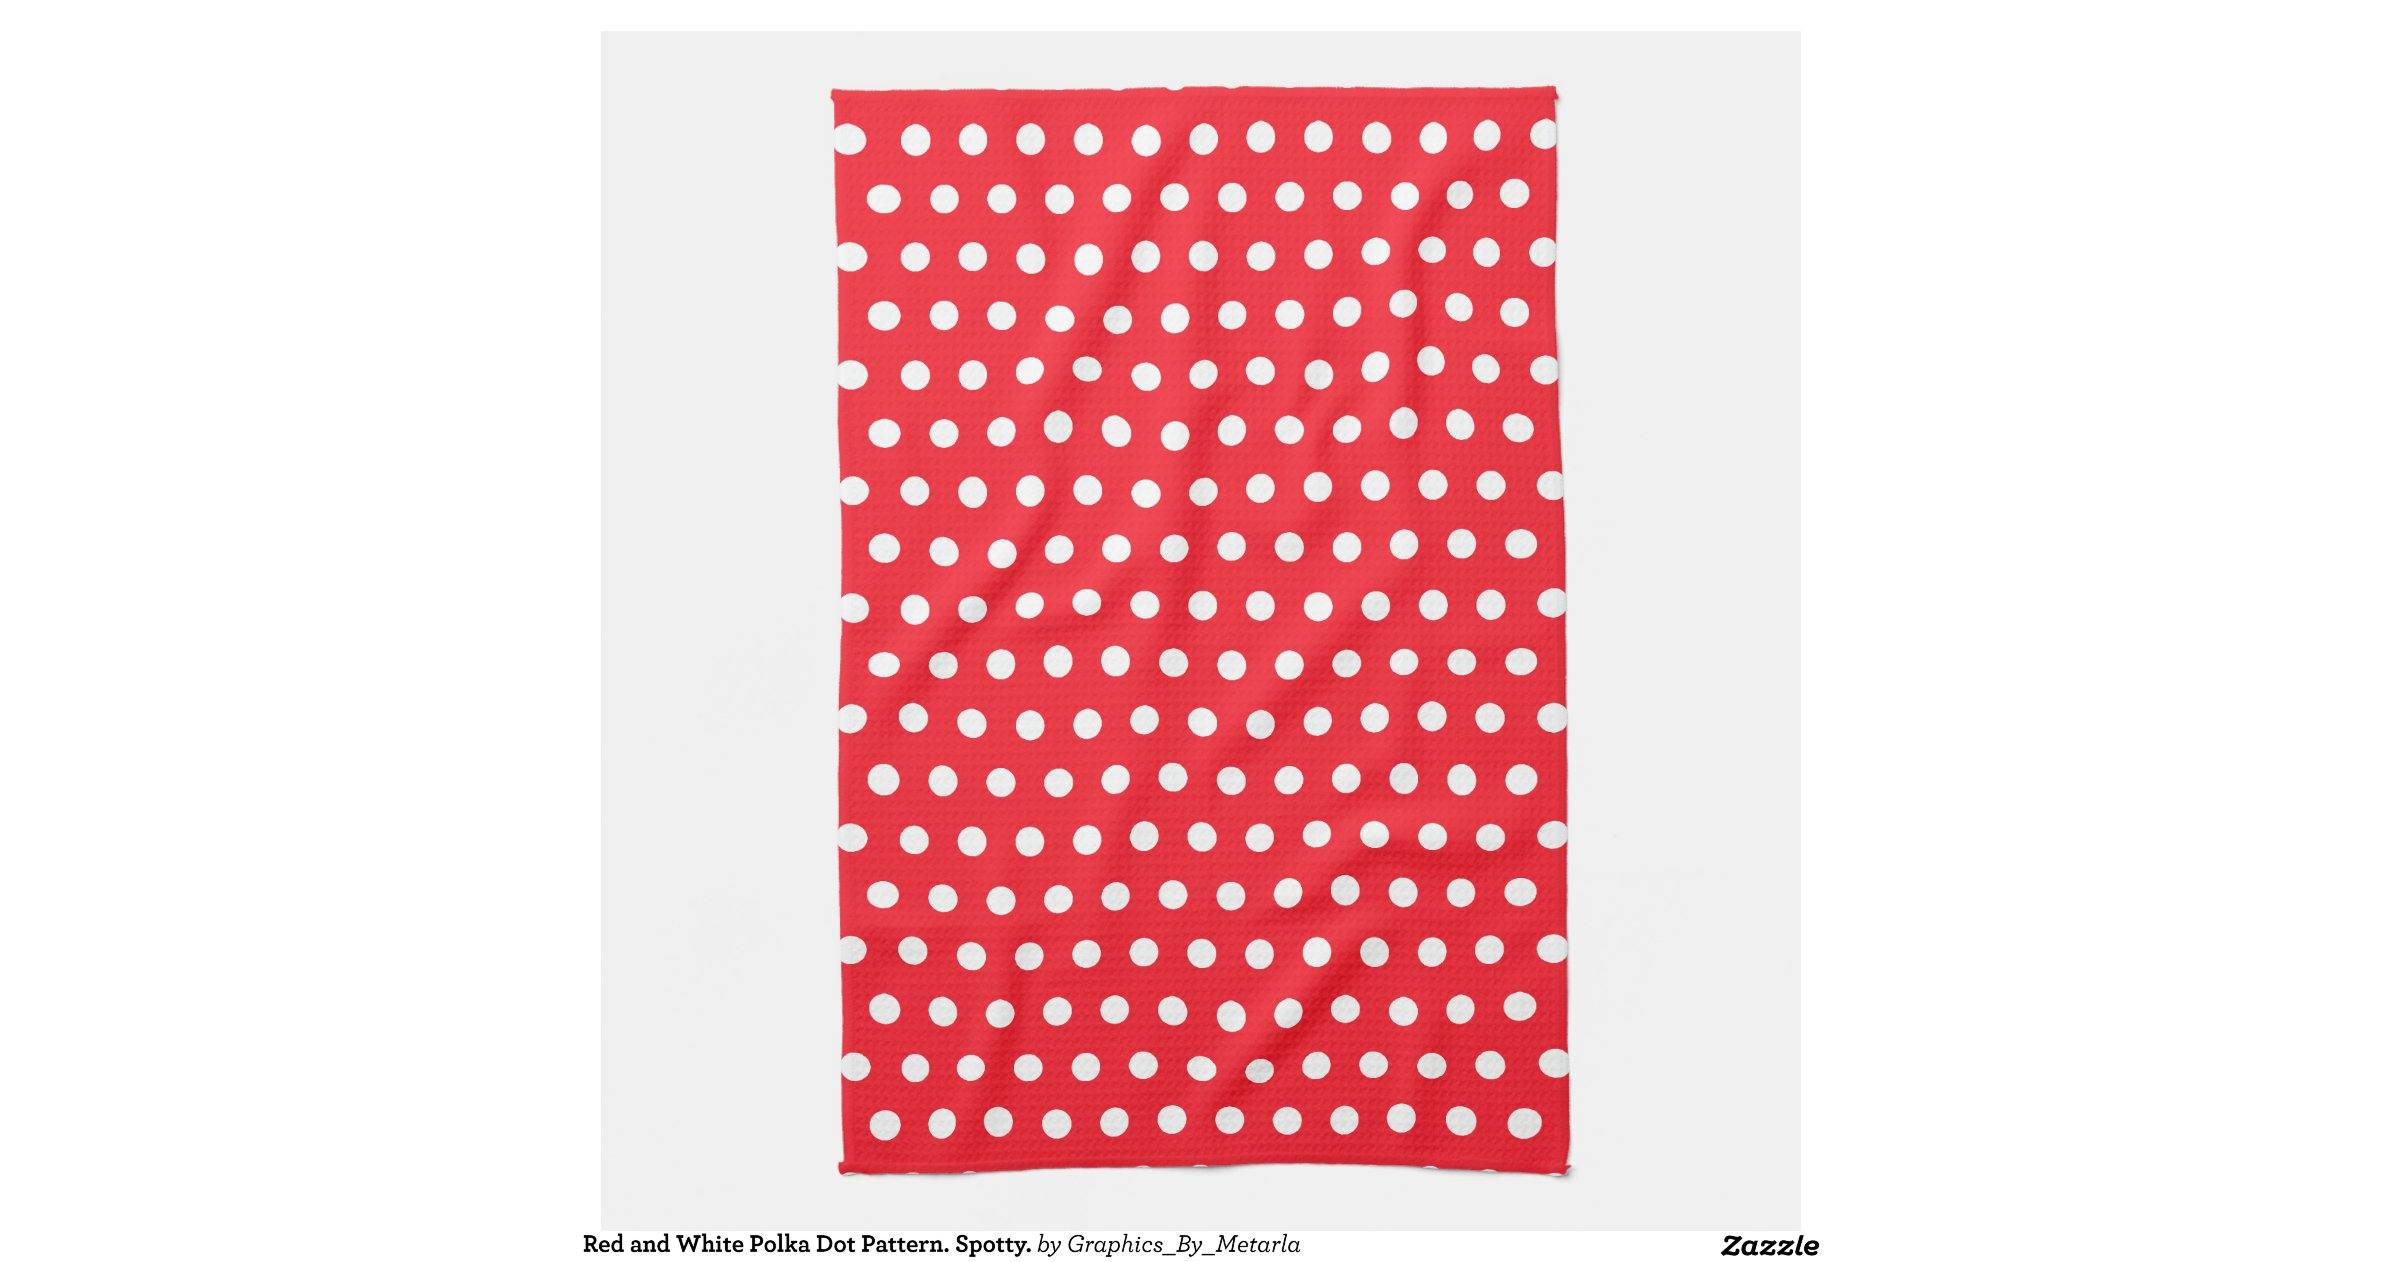 Red and white polka dot pattern spotty towel zazzle for Red and white polka dot pattern